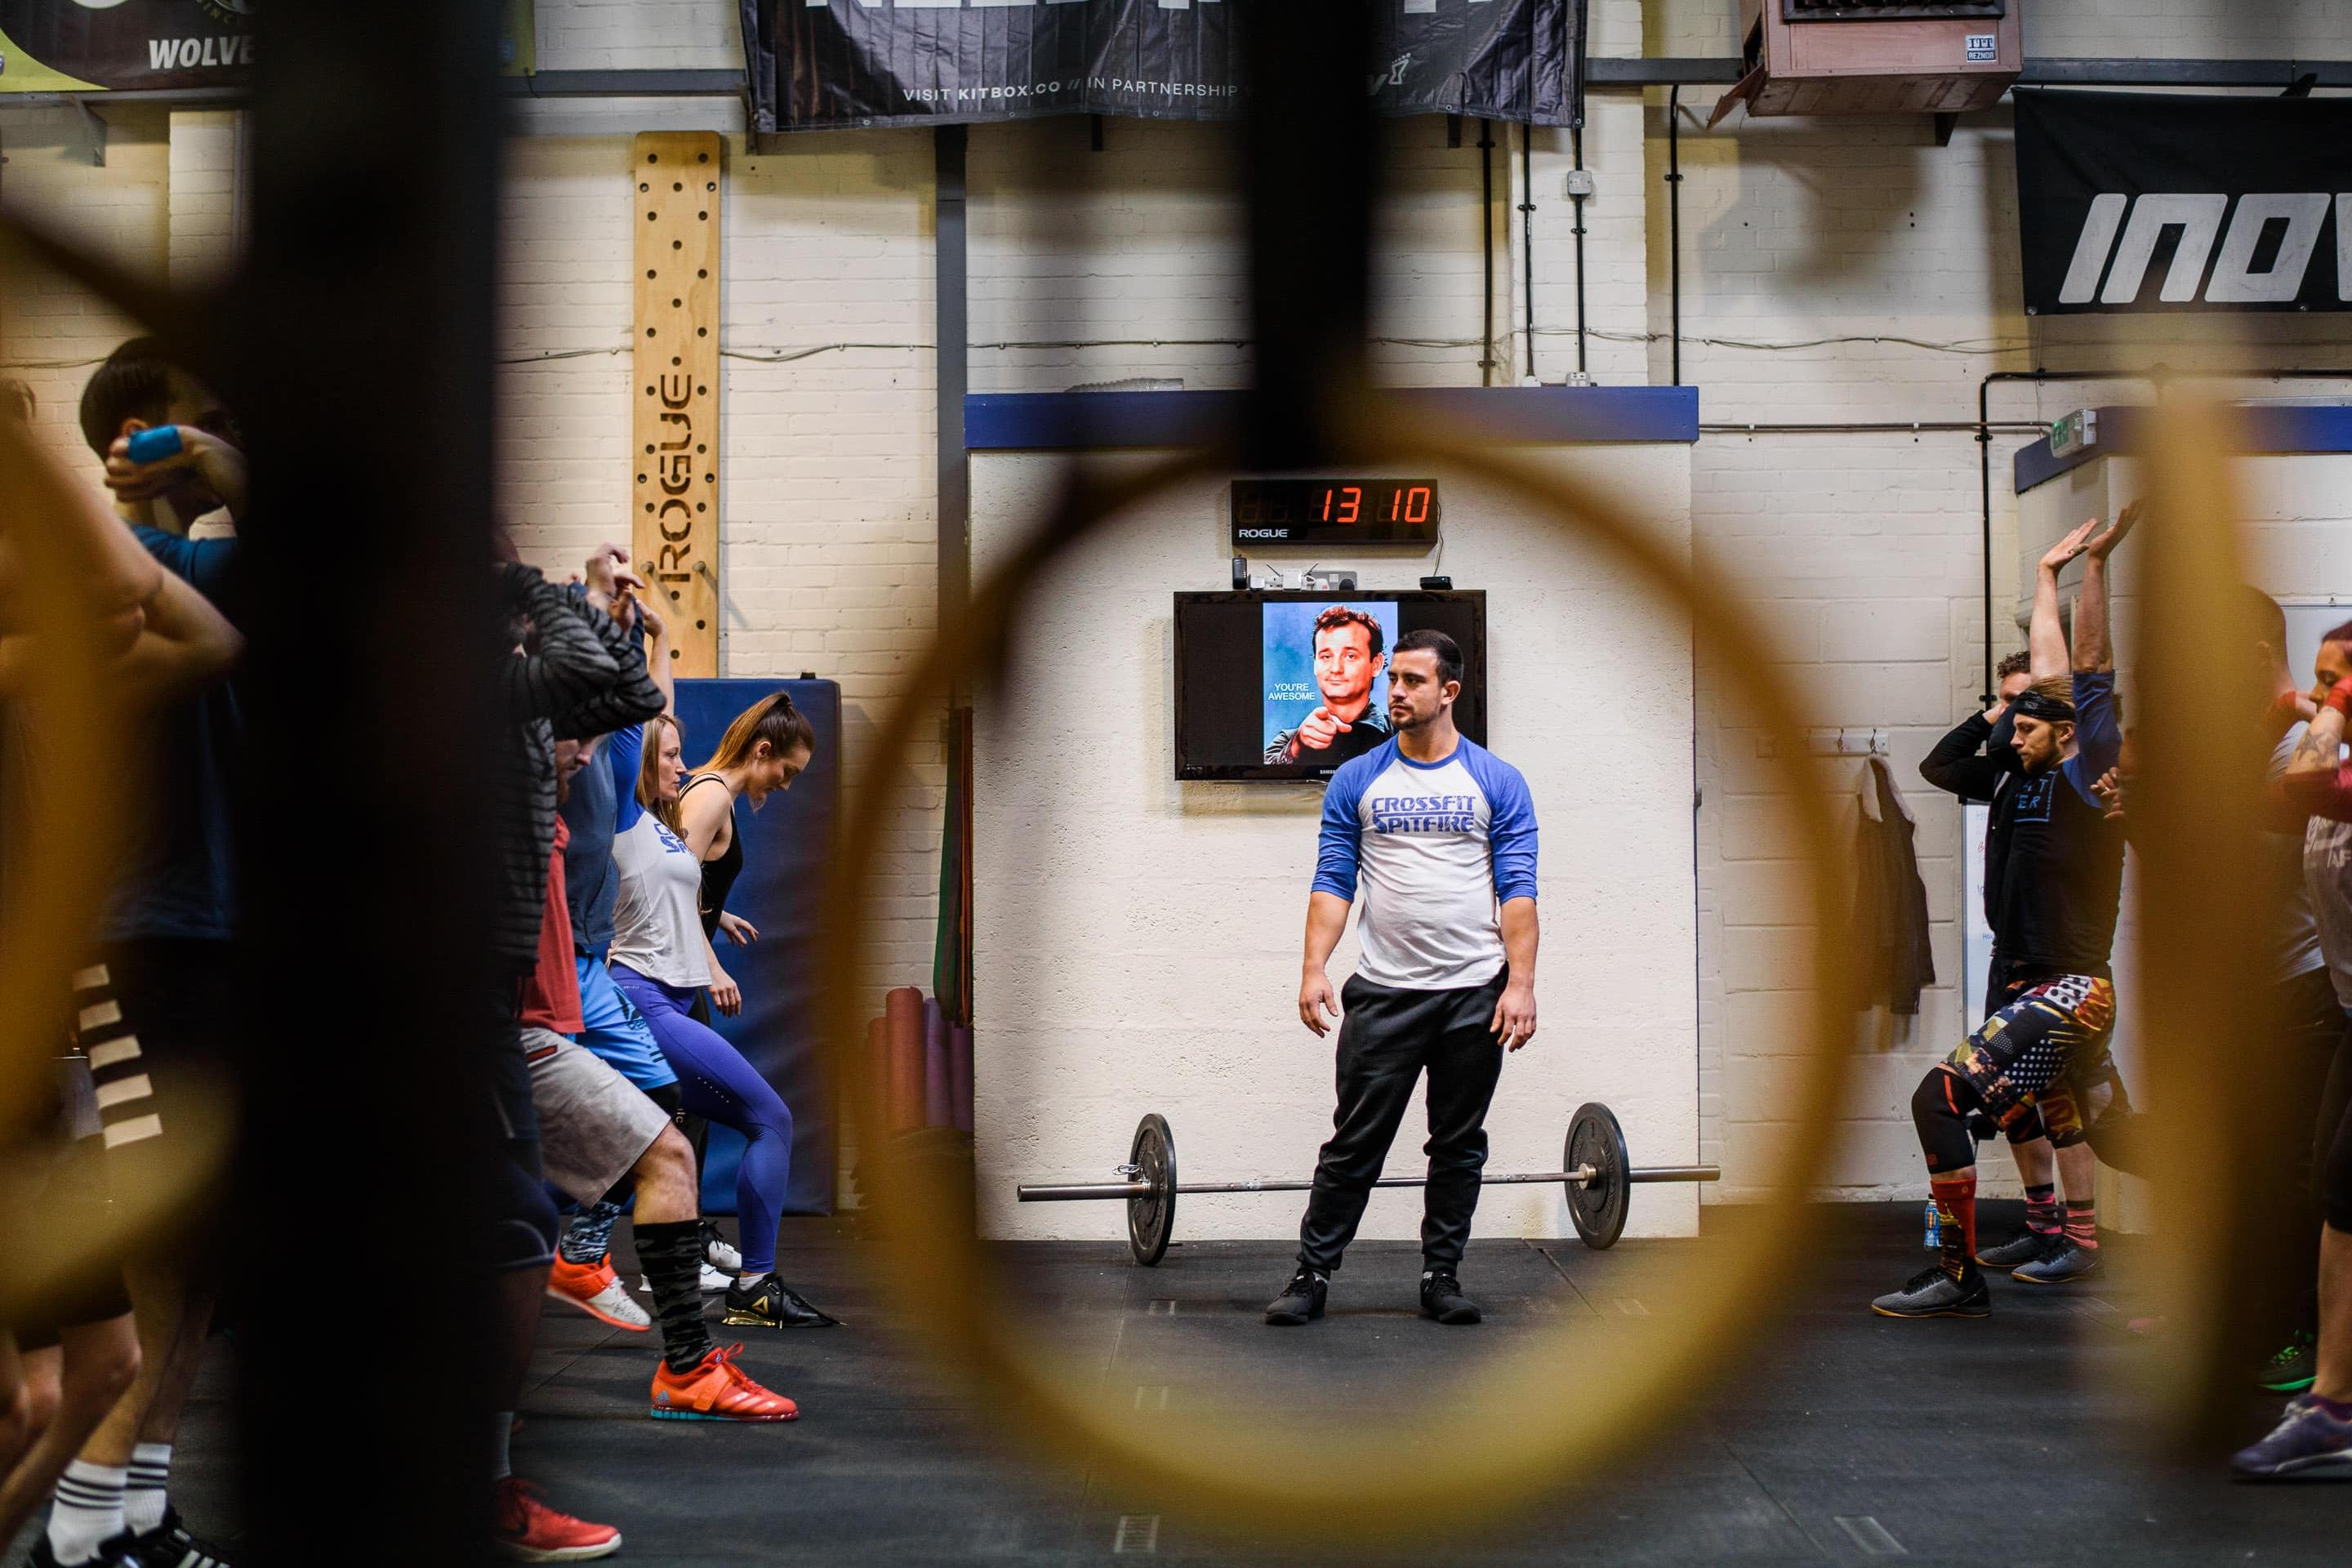 CrossFit Spitfire - Weightlifting Seminar 3